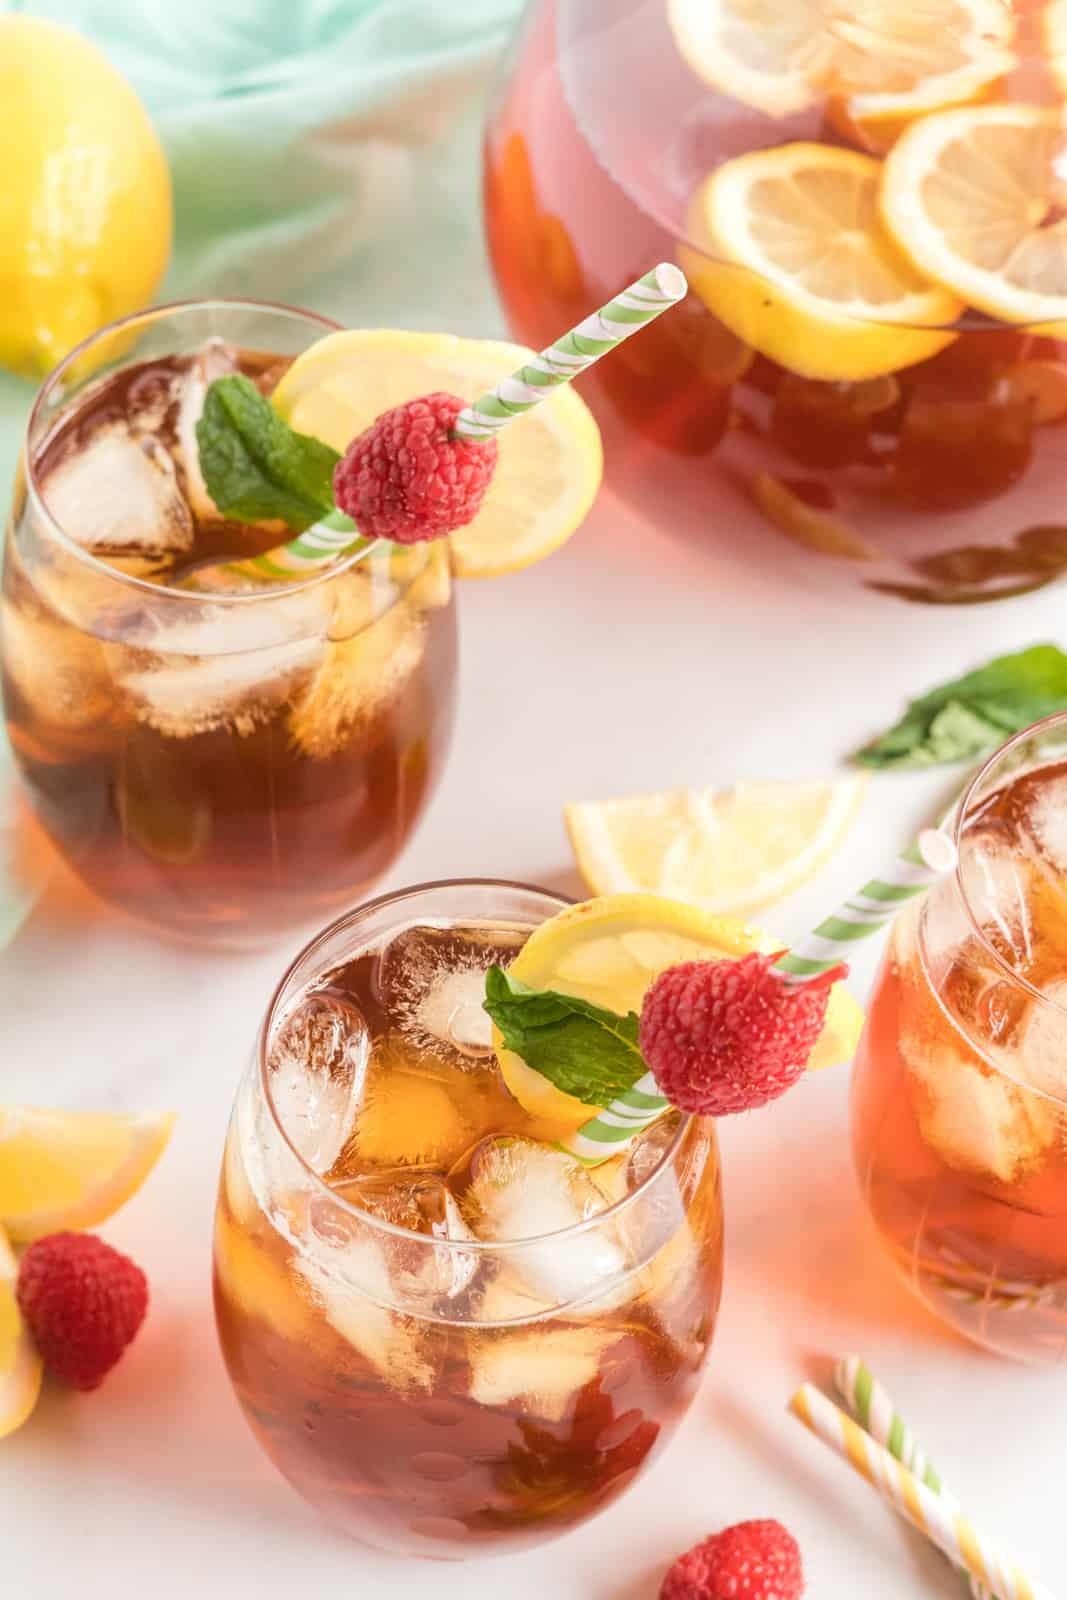 Overhead photo of sweet tea in serving glasses